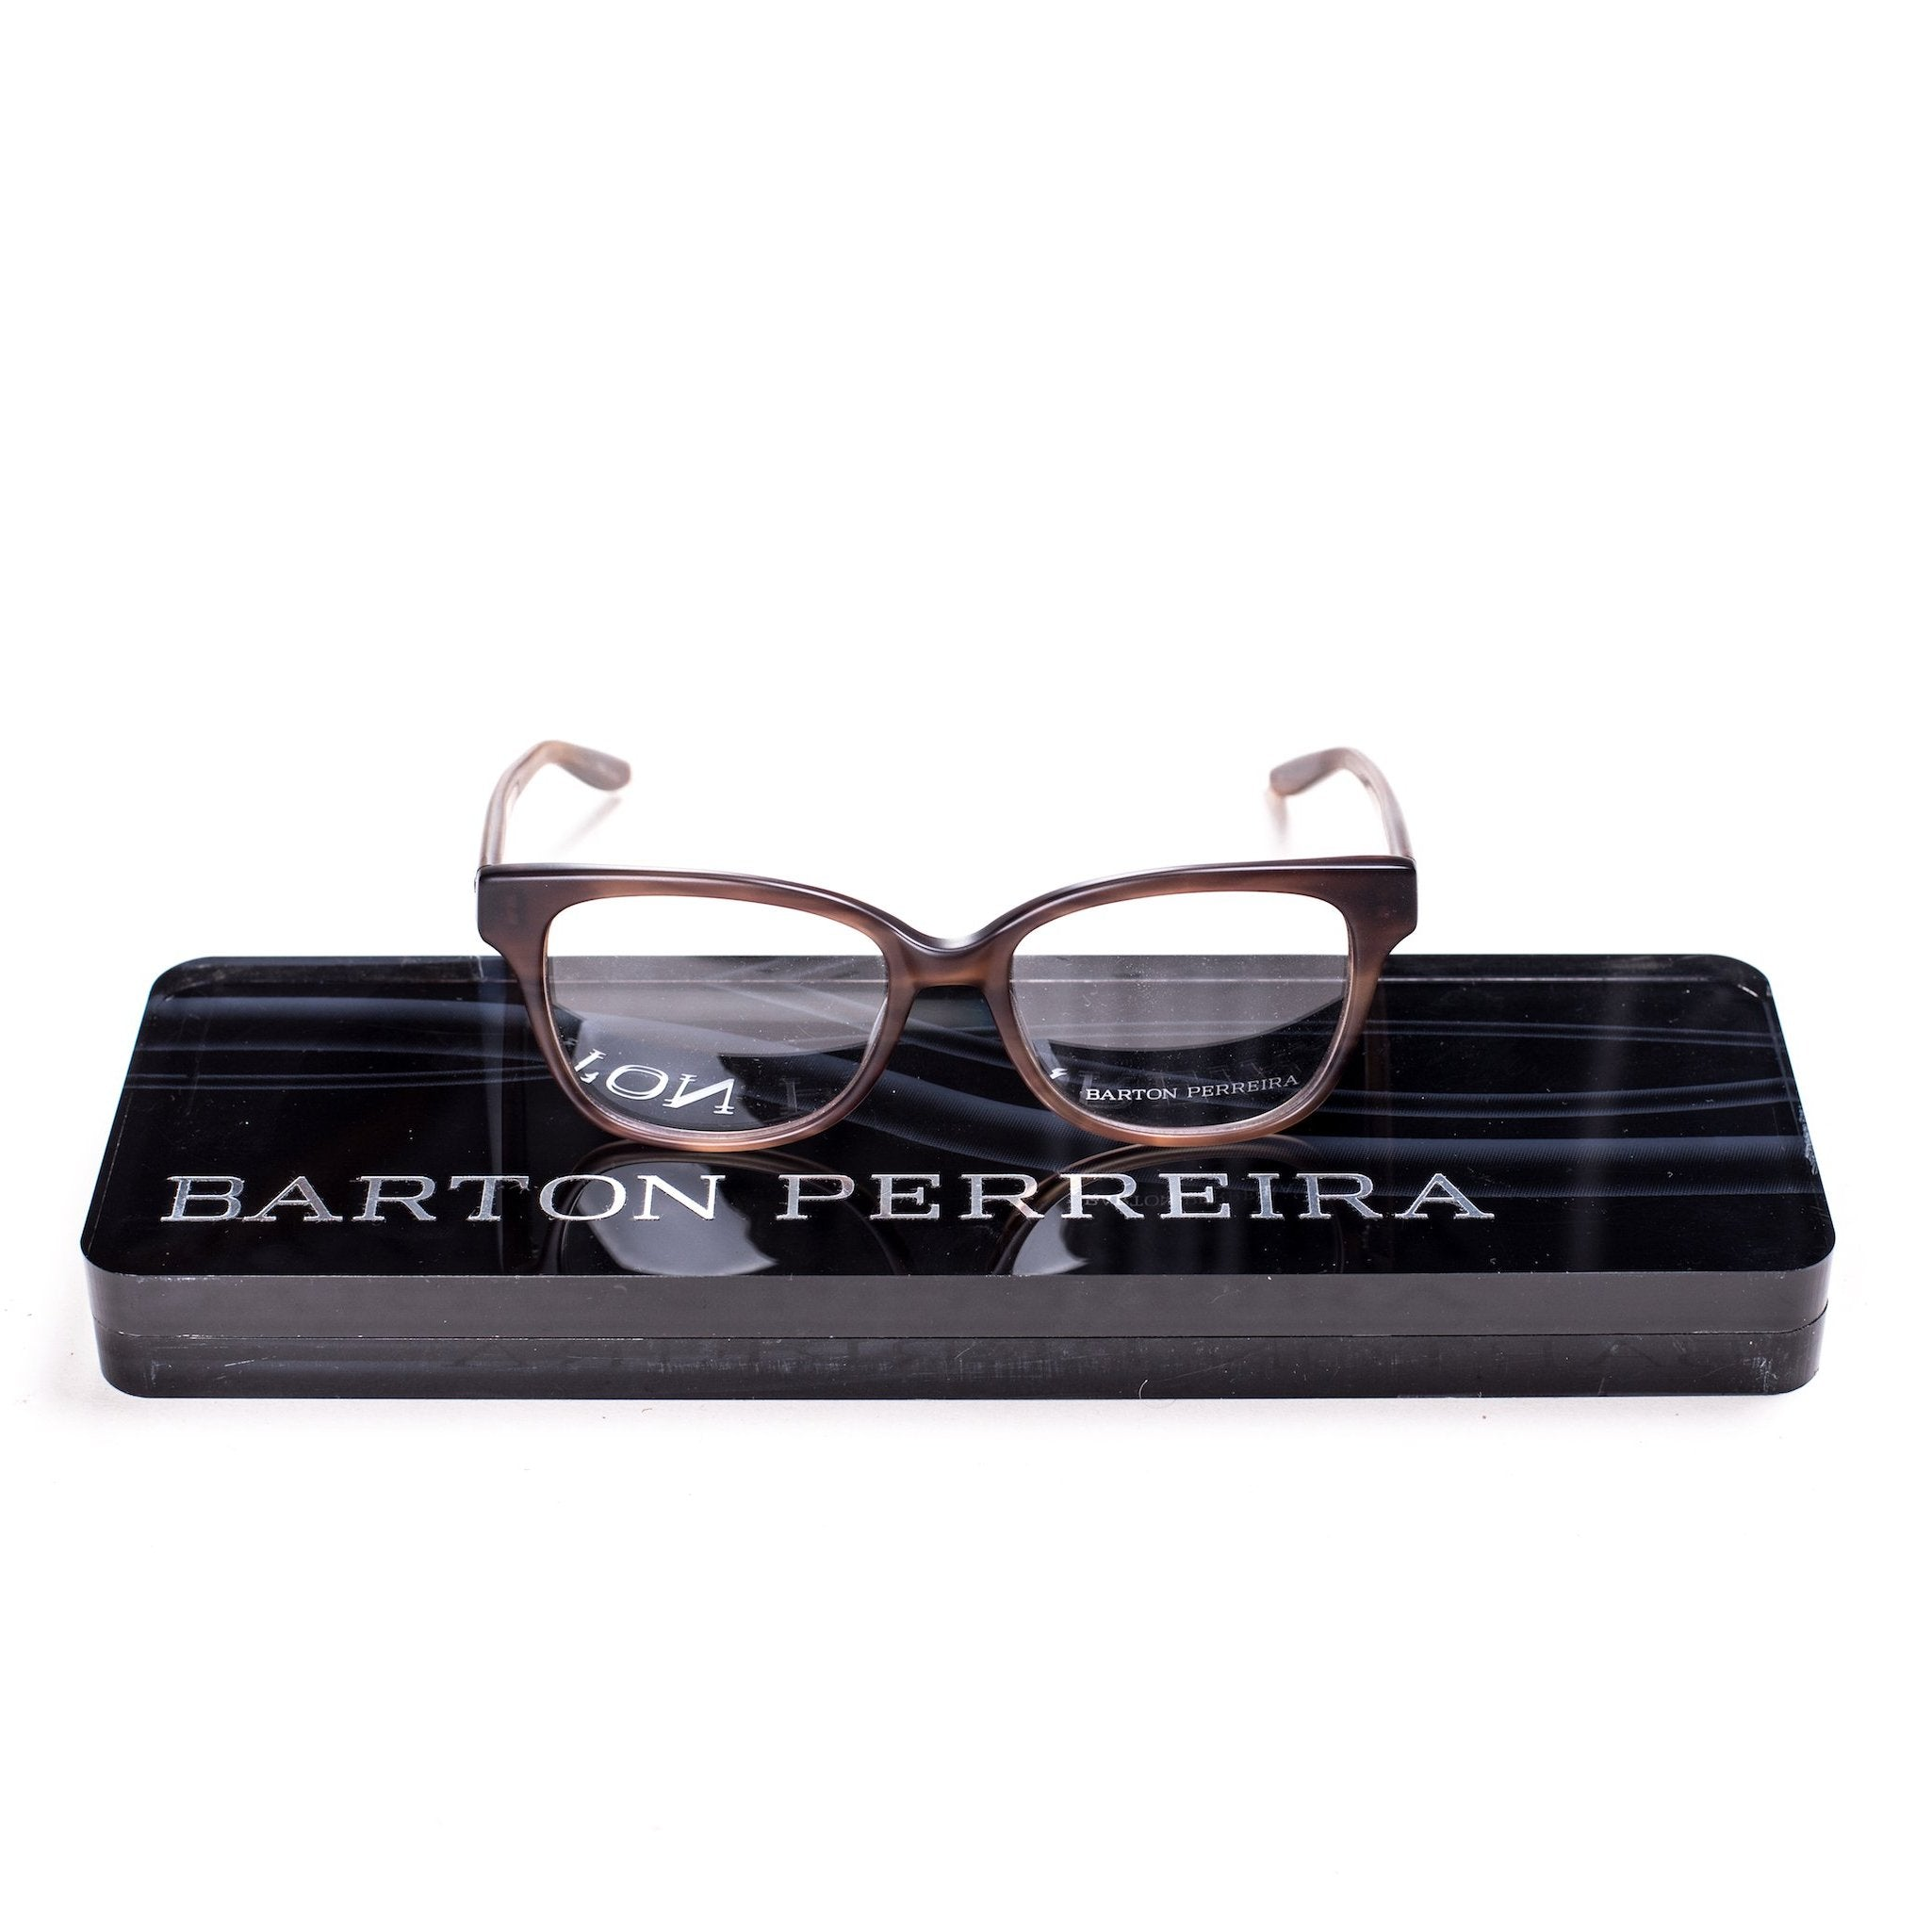 Barton Perreira Vaughan Glasses - Atacama Clothing